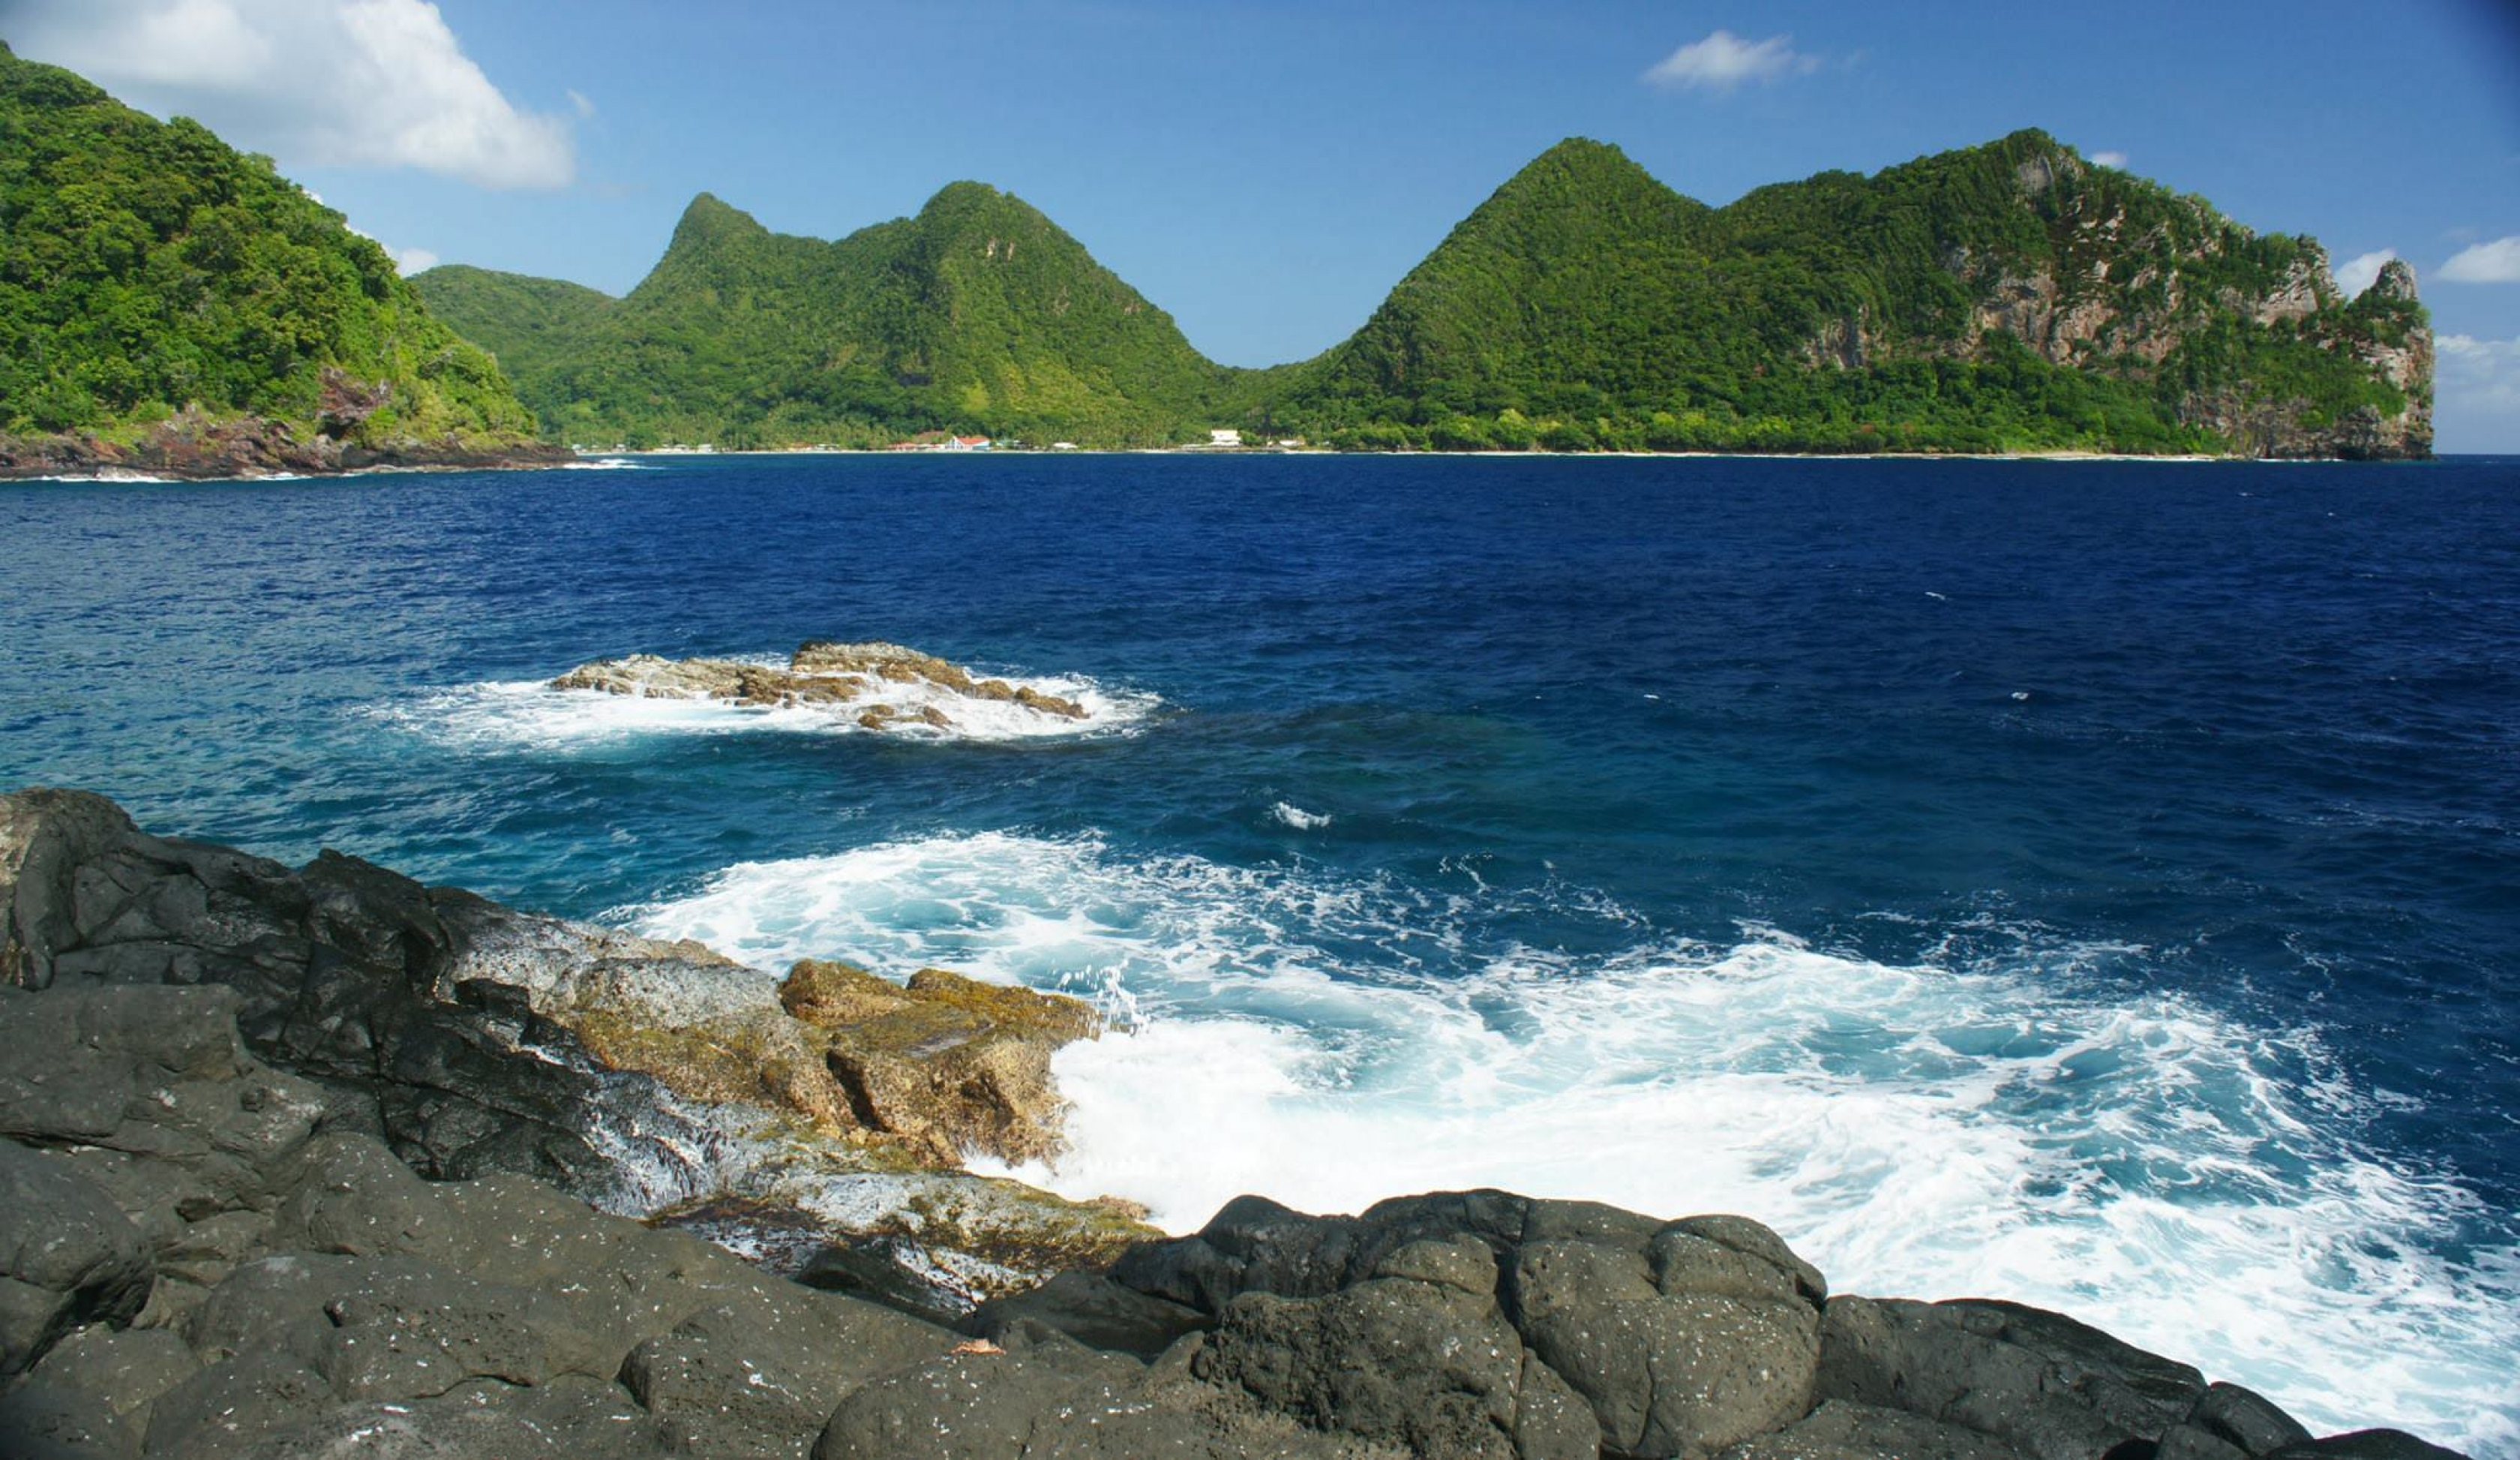 The beach at American Samoa National Park is beautiful.